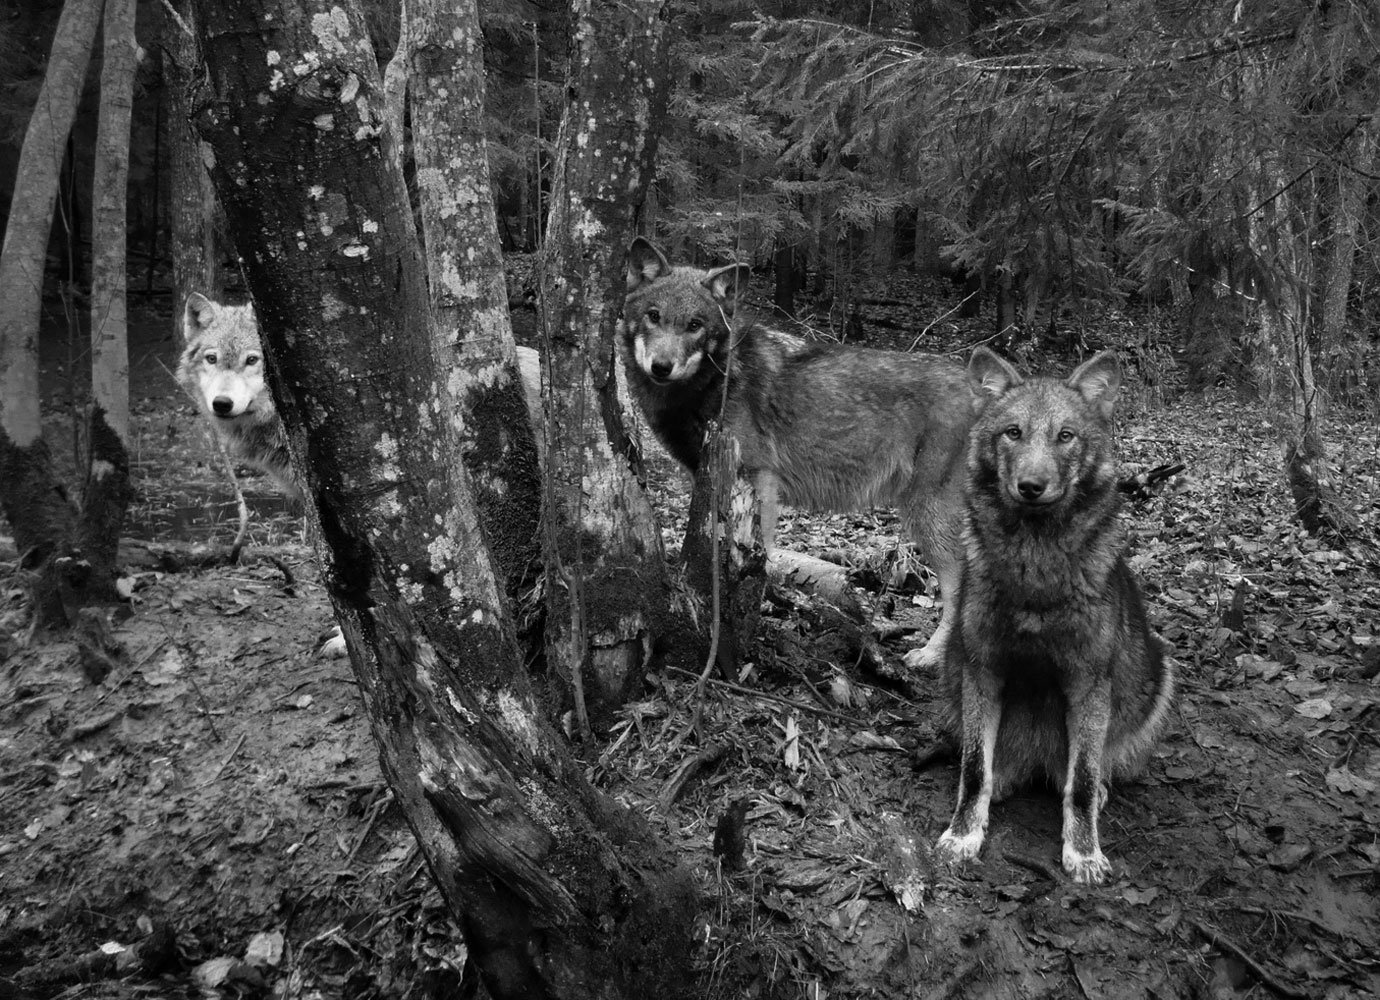 The story of a remarkable zoologist who lived among wolves in Georgia